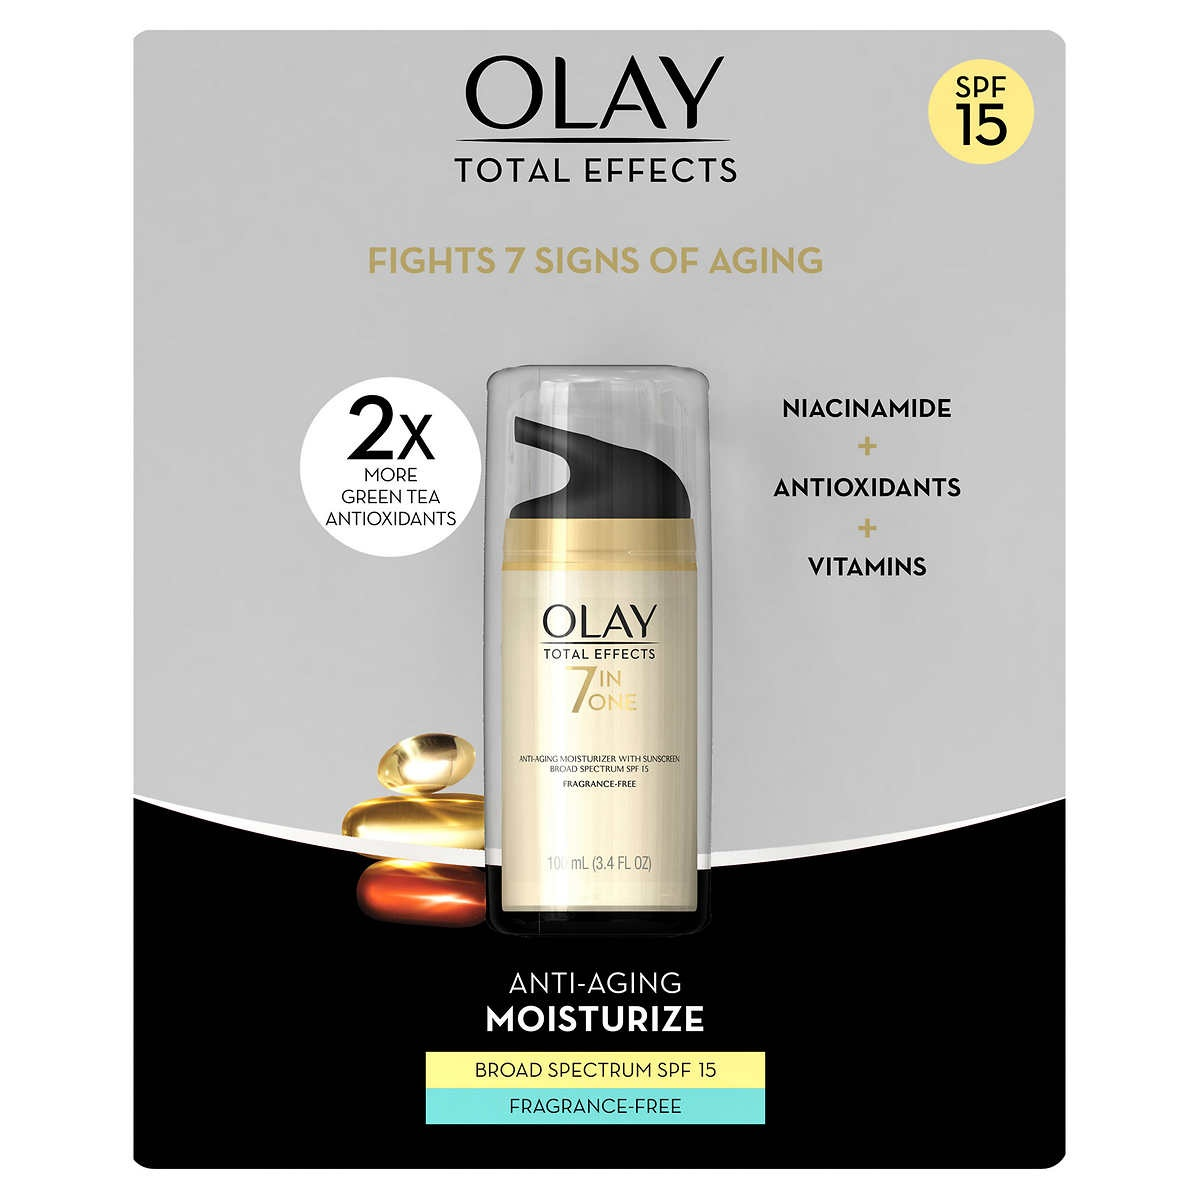 slide 1 of 4, Olay Total Effects 7-in-1 Anti-Aging Moisturizer with Broad Spectrum SPF 15 Sunscreen,